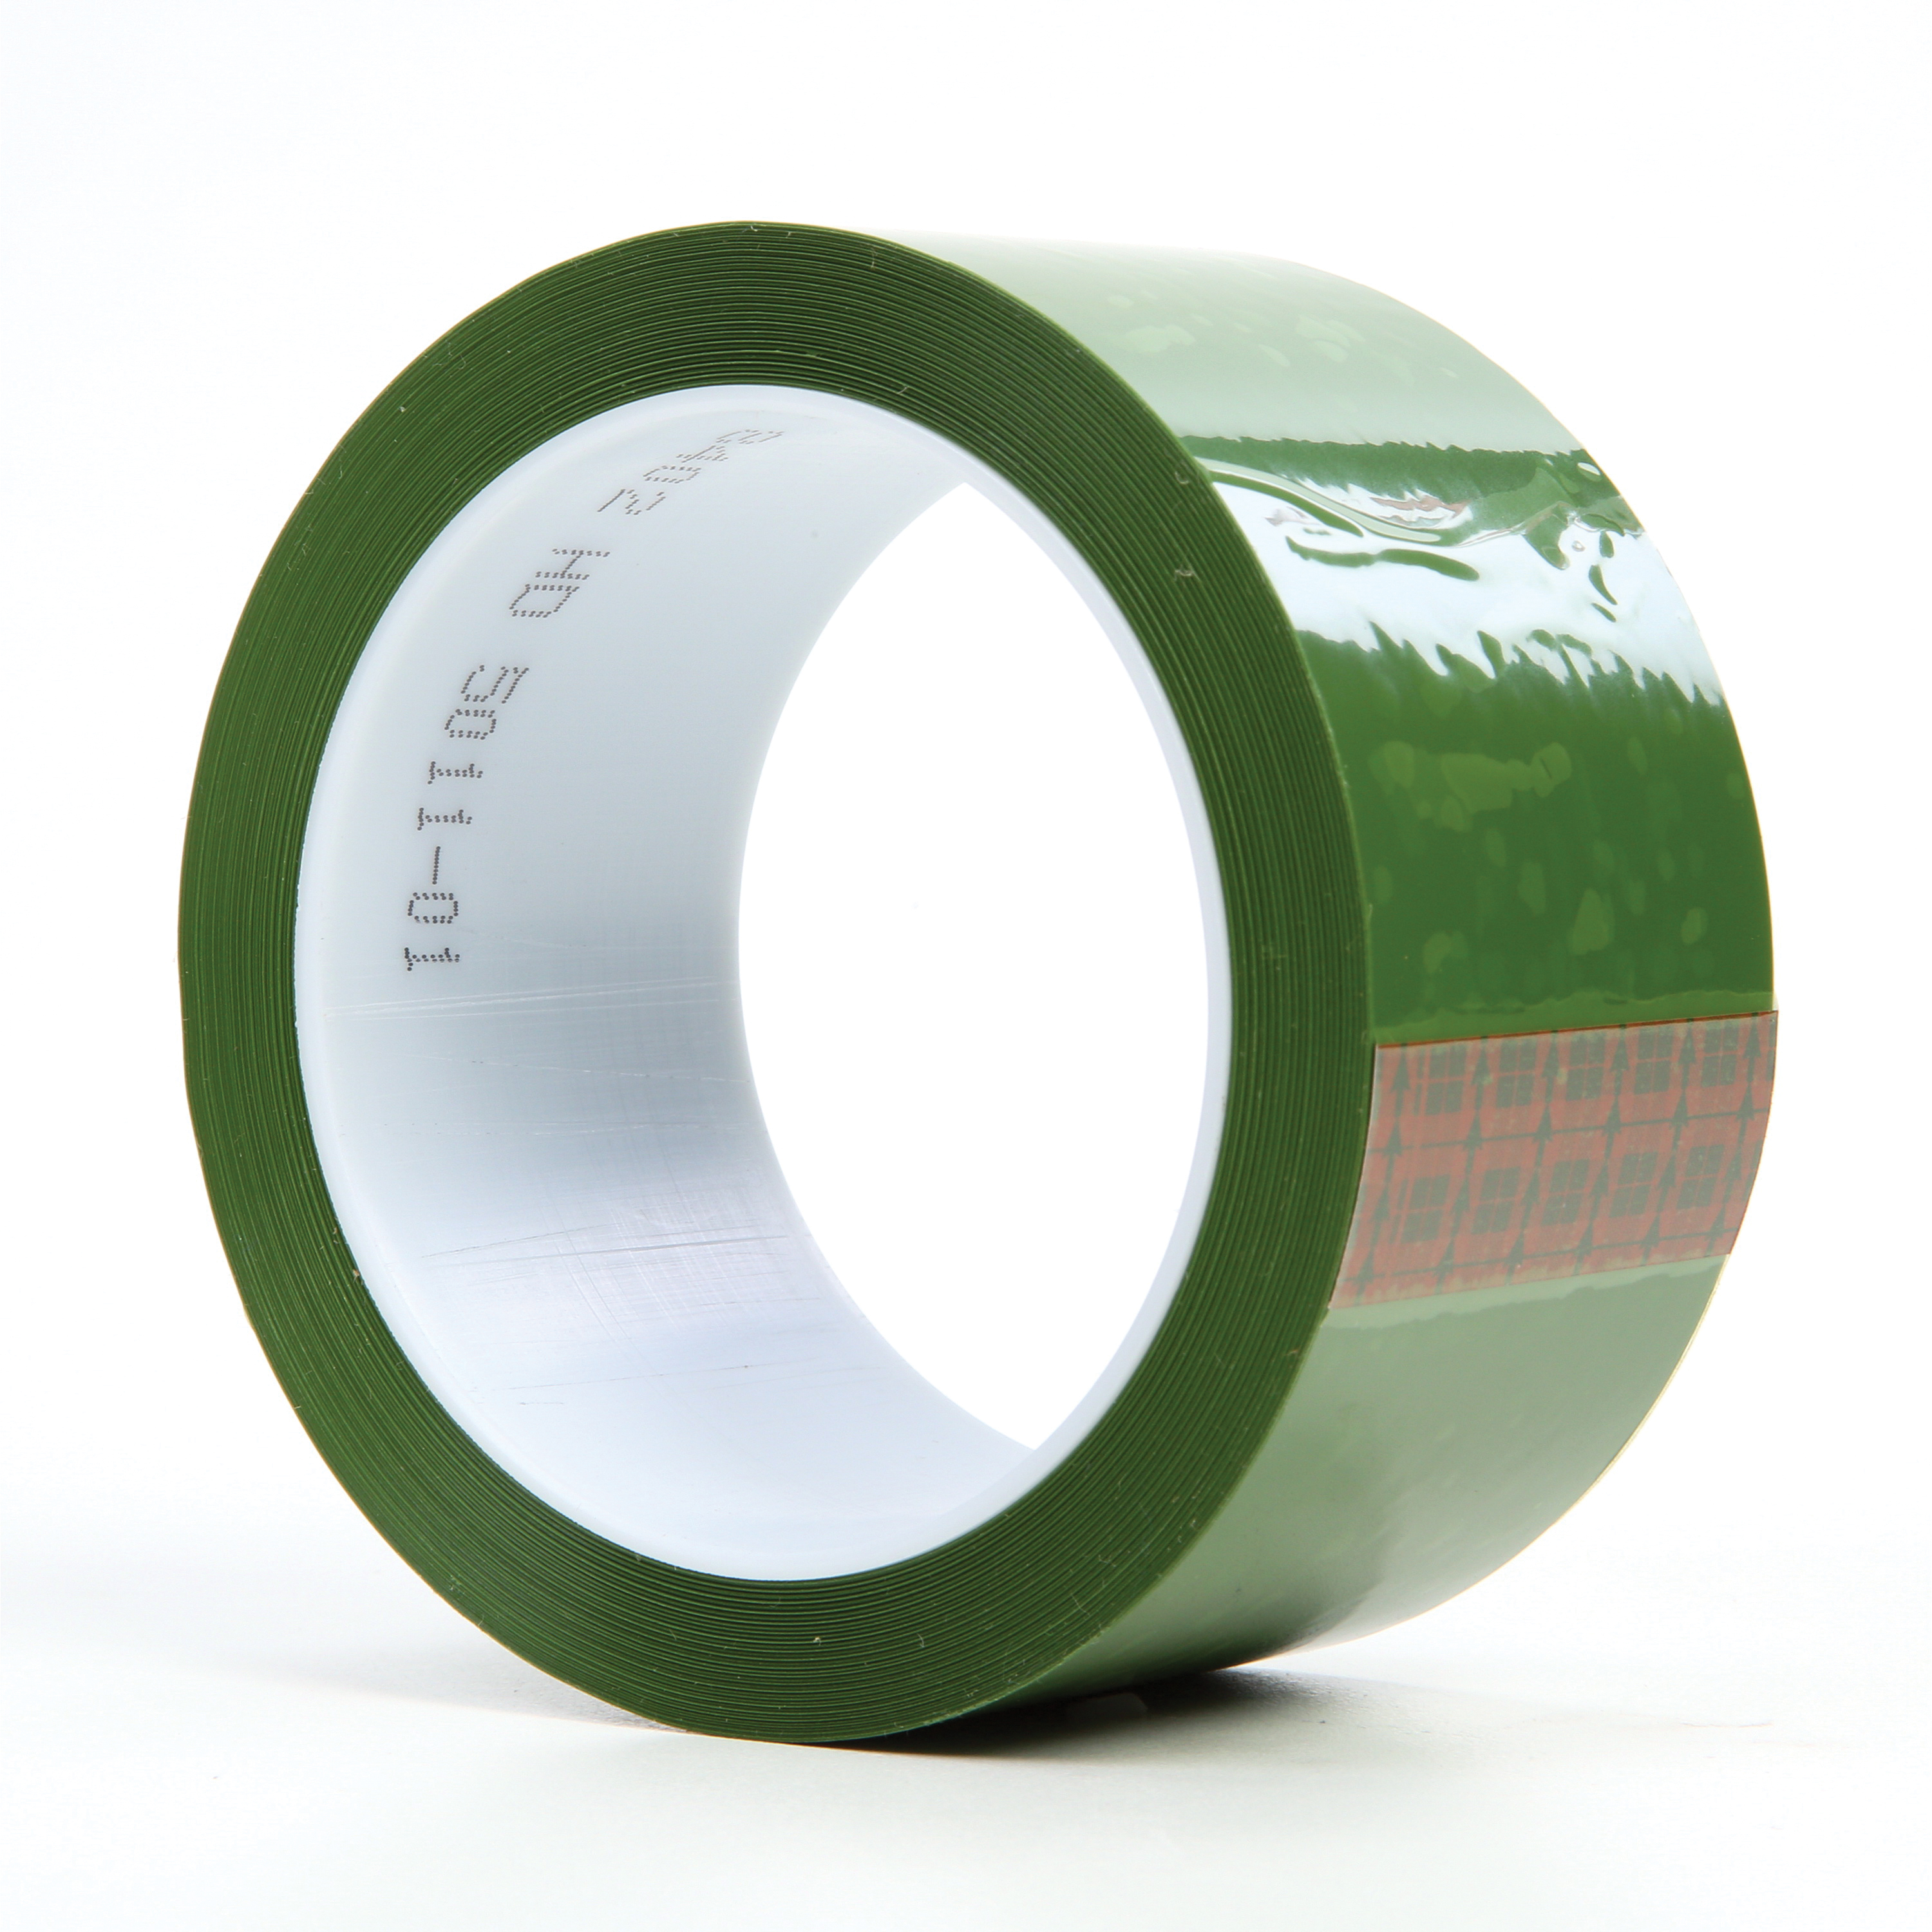 3M™ 021200-04368 Masking Tape, 72 yd L x 2 in W, 1.9 mil THK, Silicon Adhesive, Polyester Backing